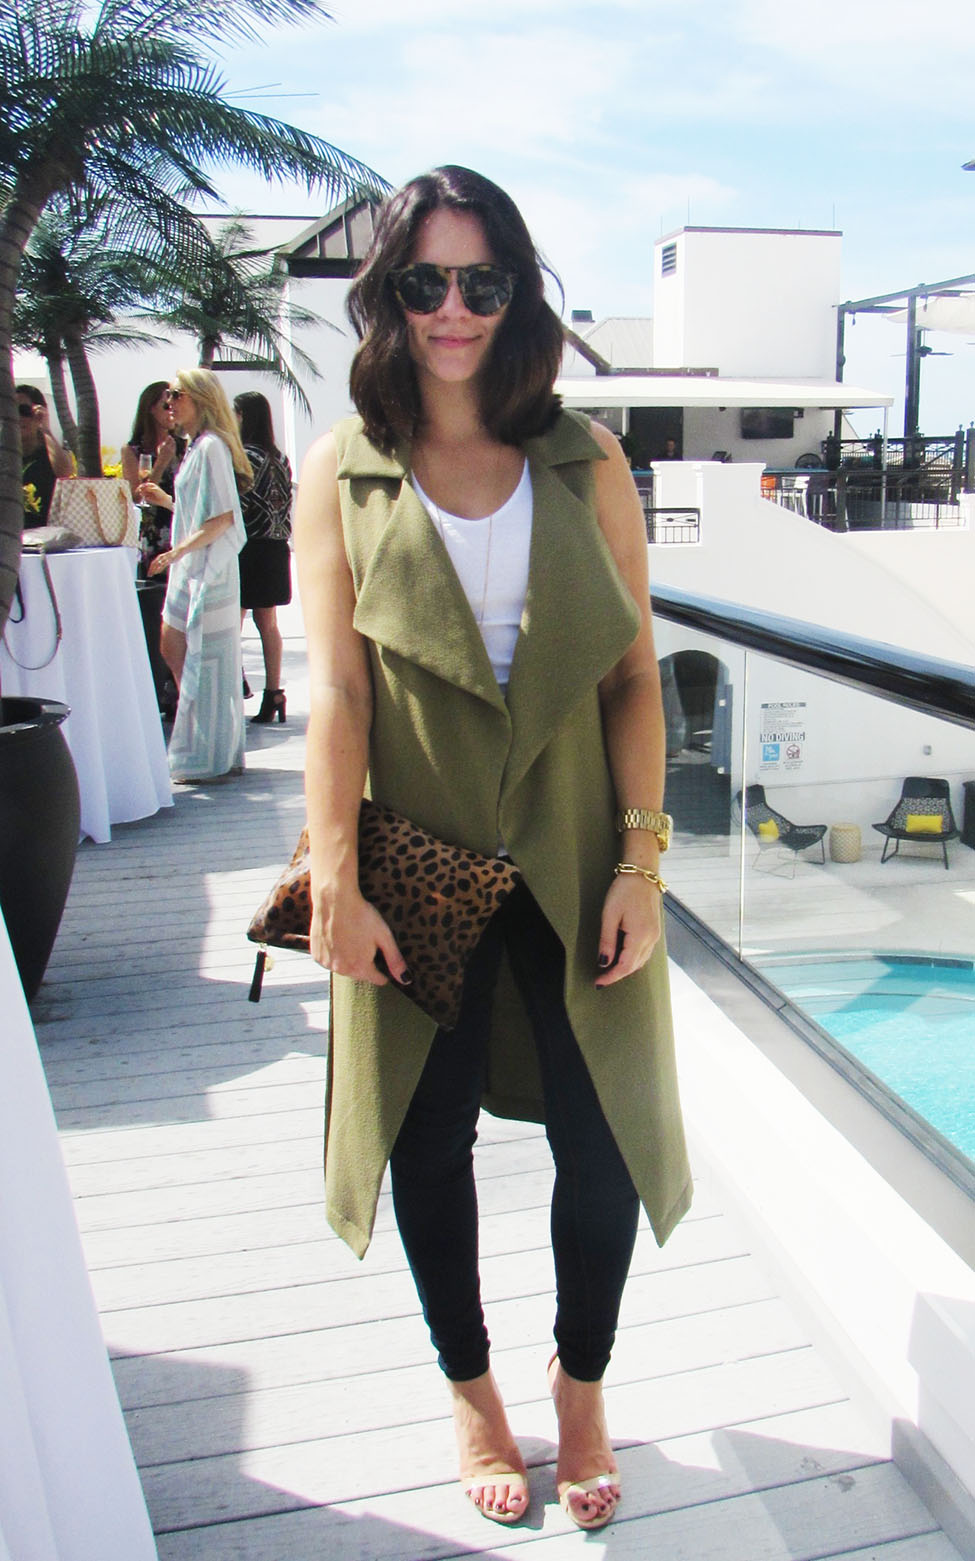 Willow Loves Fashion South Walton Fashion Week 30A Street Style